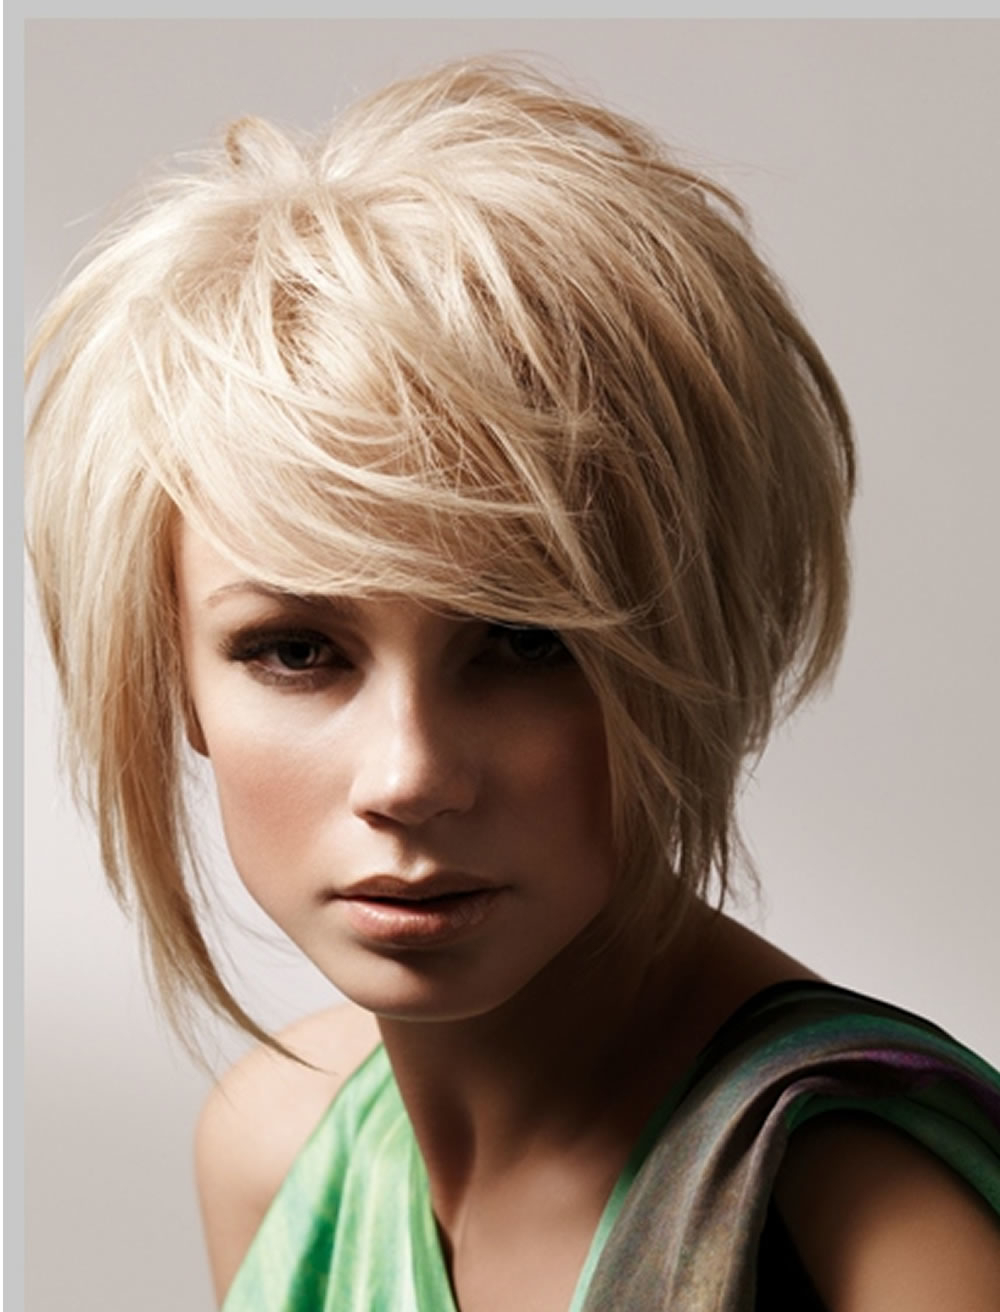 Cute Short Blonde Hairstyles 2018 – Best Short Hairstyles Within Short Haircuts For Blondes With Thin Hair (View 15 of 25)